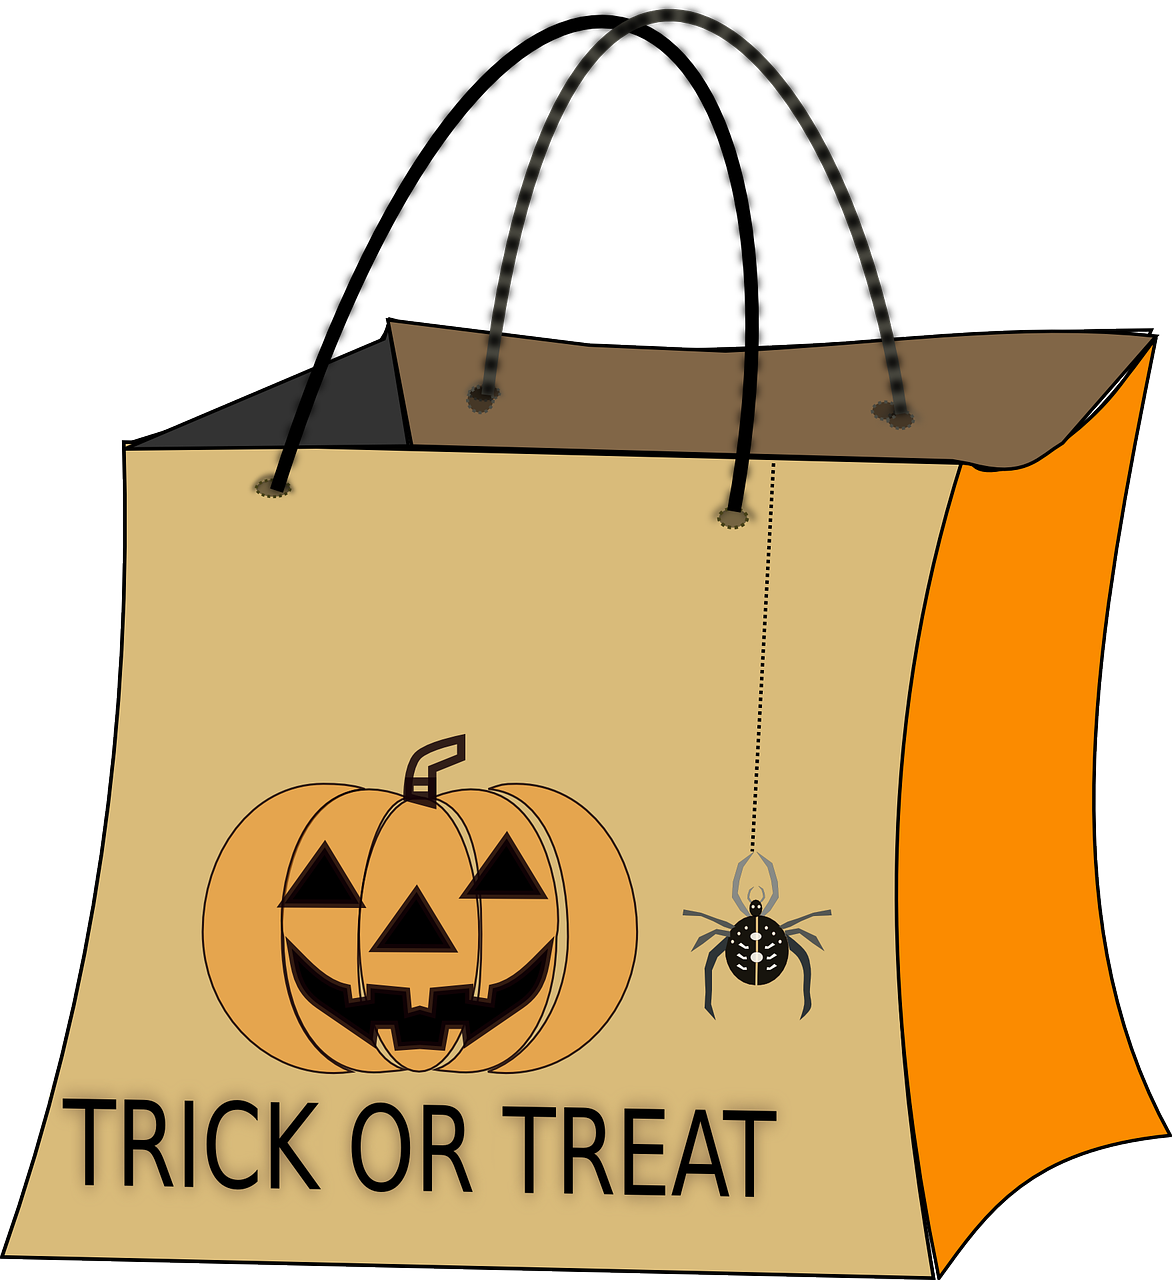 Clipart halloween safety. Trick or treat pails